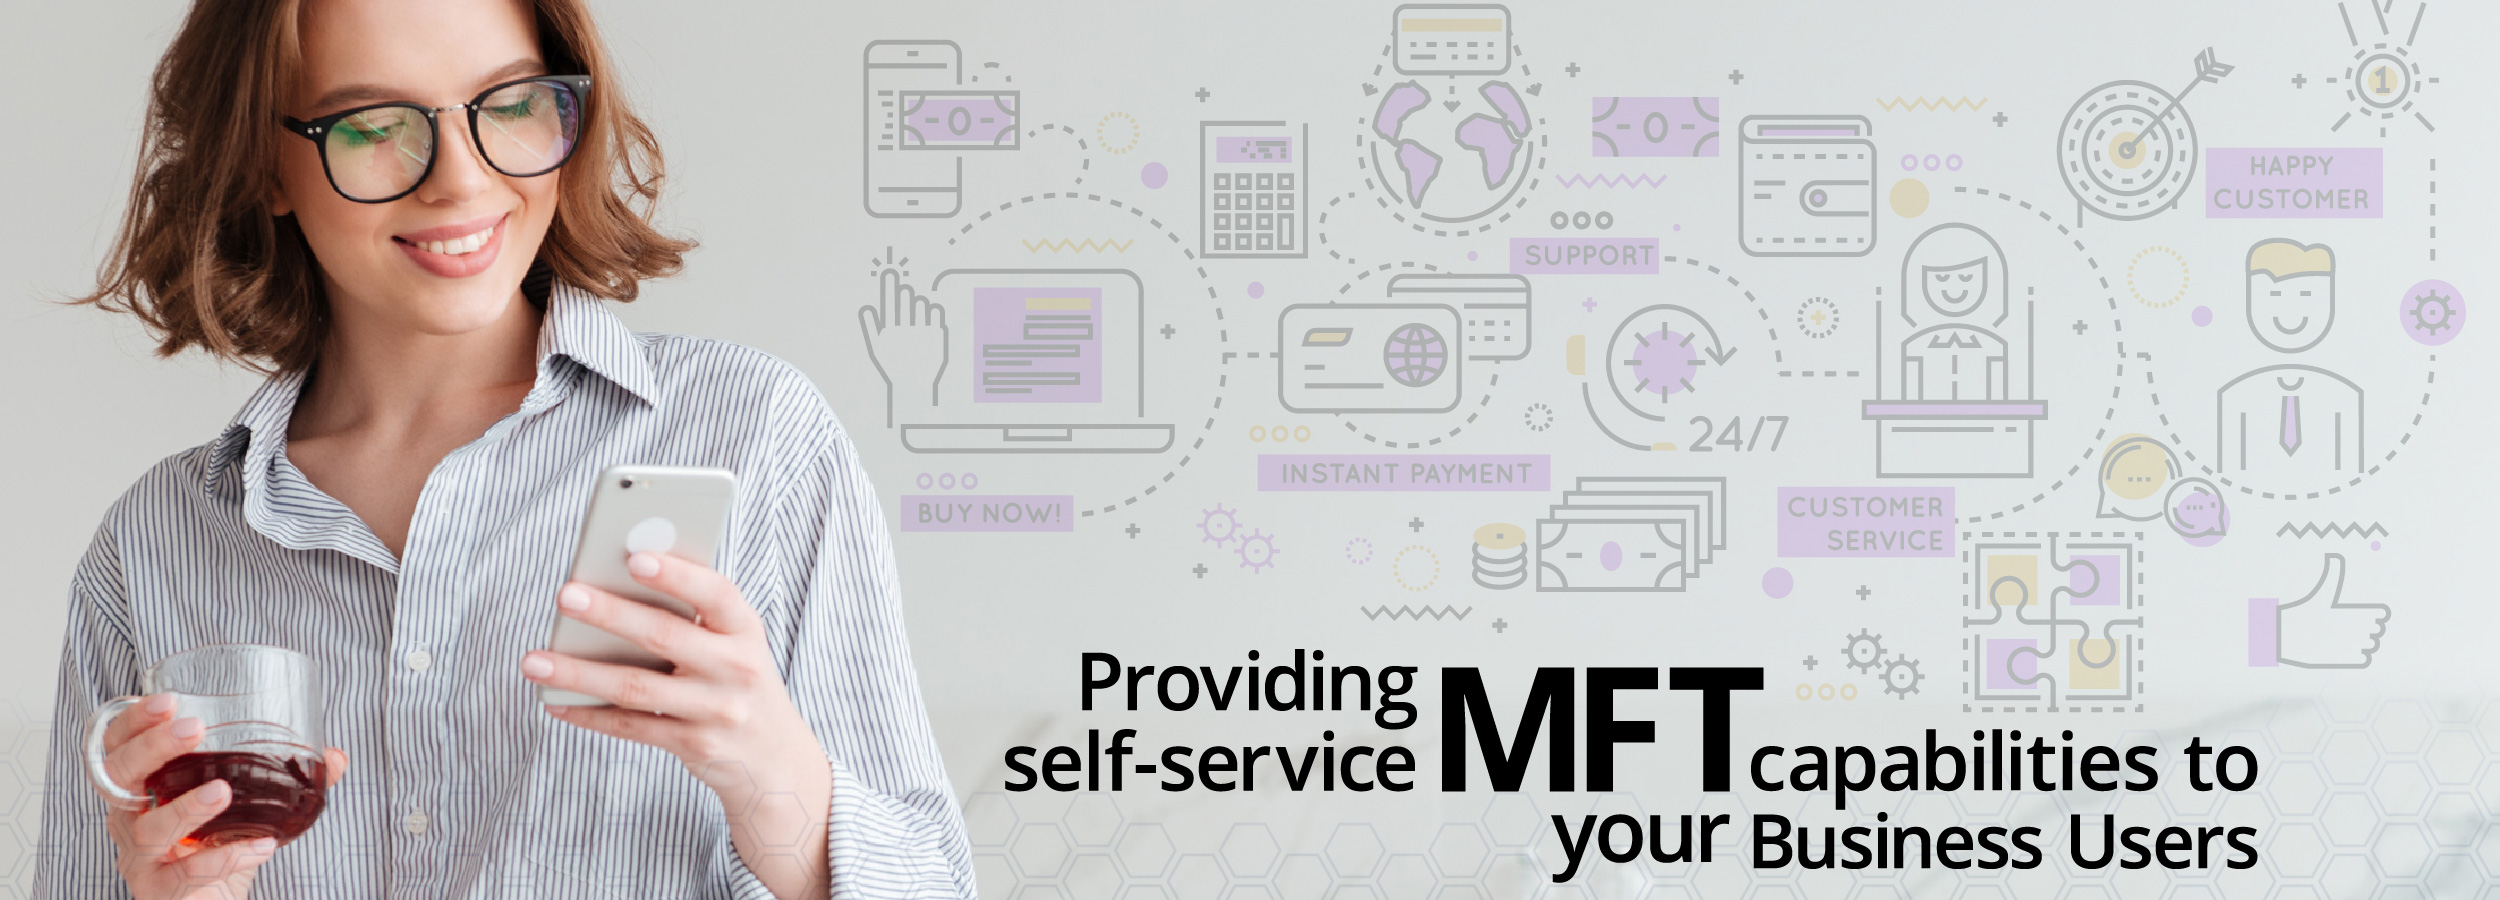 Providing Self-Service MFT Capabilities to Your Business Users